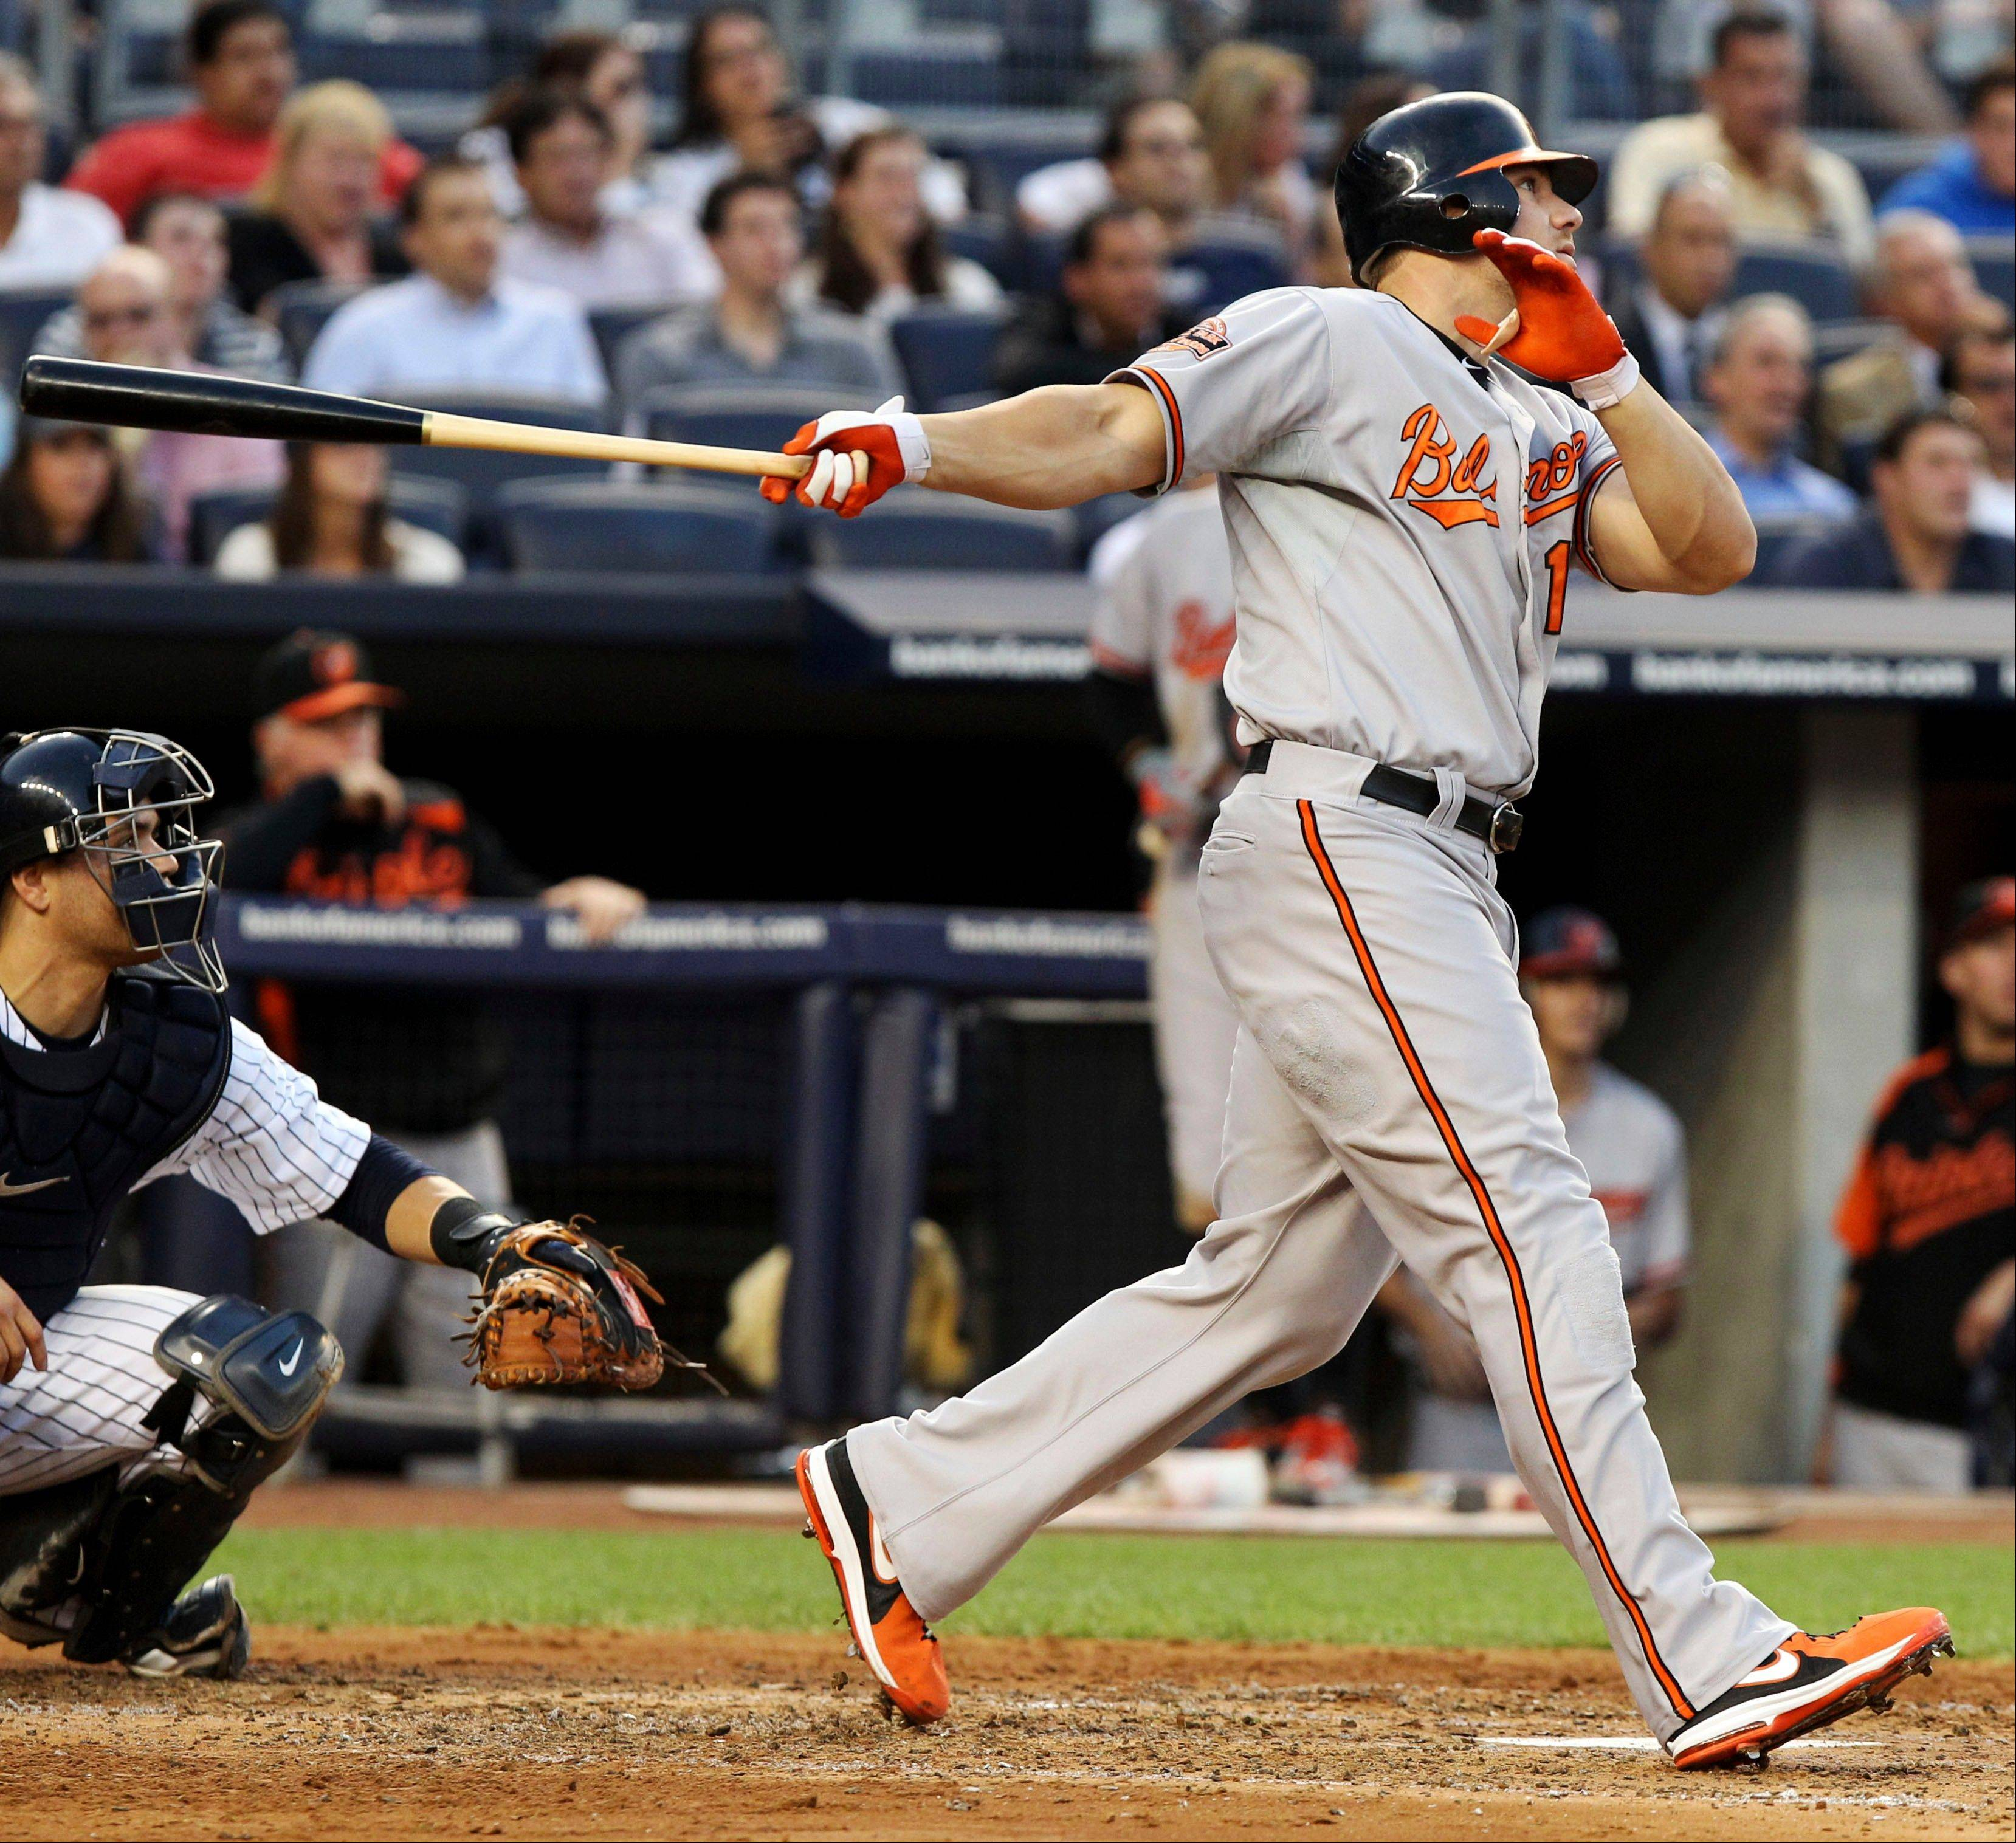 Baltimore's Chris Davis hits a grand slam during the second inning Tuesday in New York.